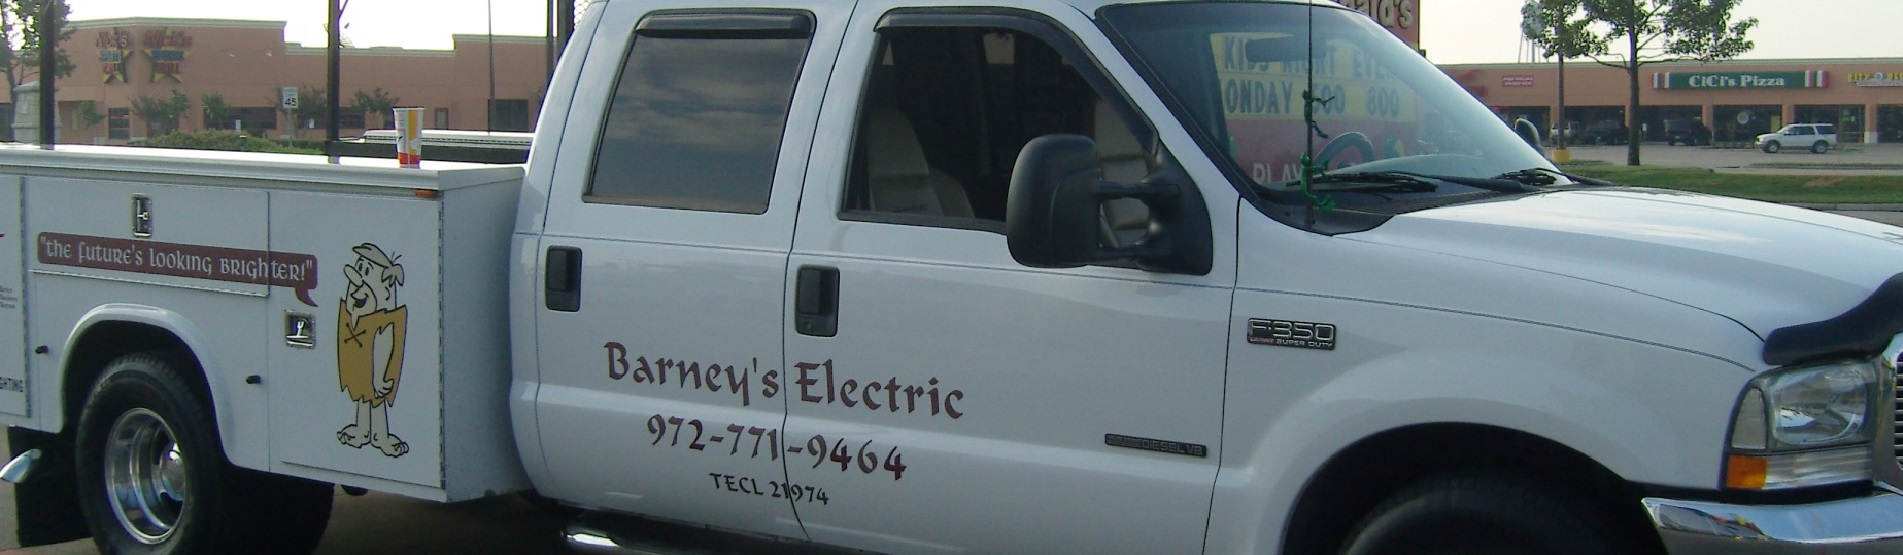 Electrician Rockwall TX Barney's Electric Full Service Electrician Residential Commercial Retail and New Construction Wiring Repair Installation Service 24 Hour Emergency Services Master Electrician Rockwall Texas